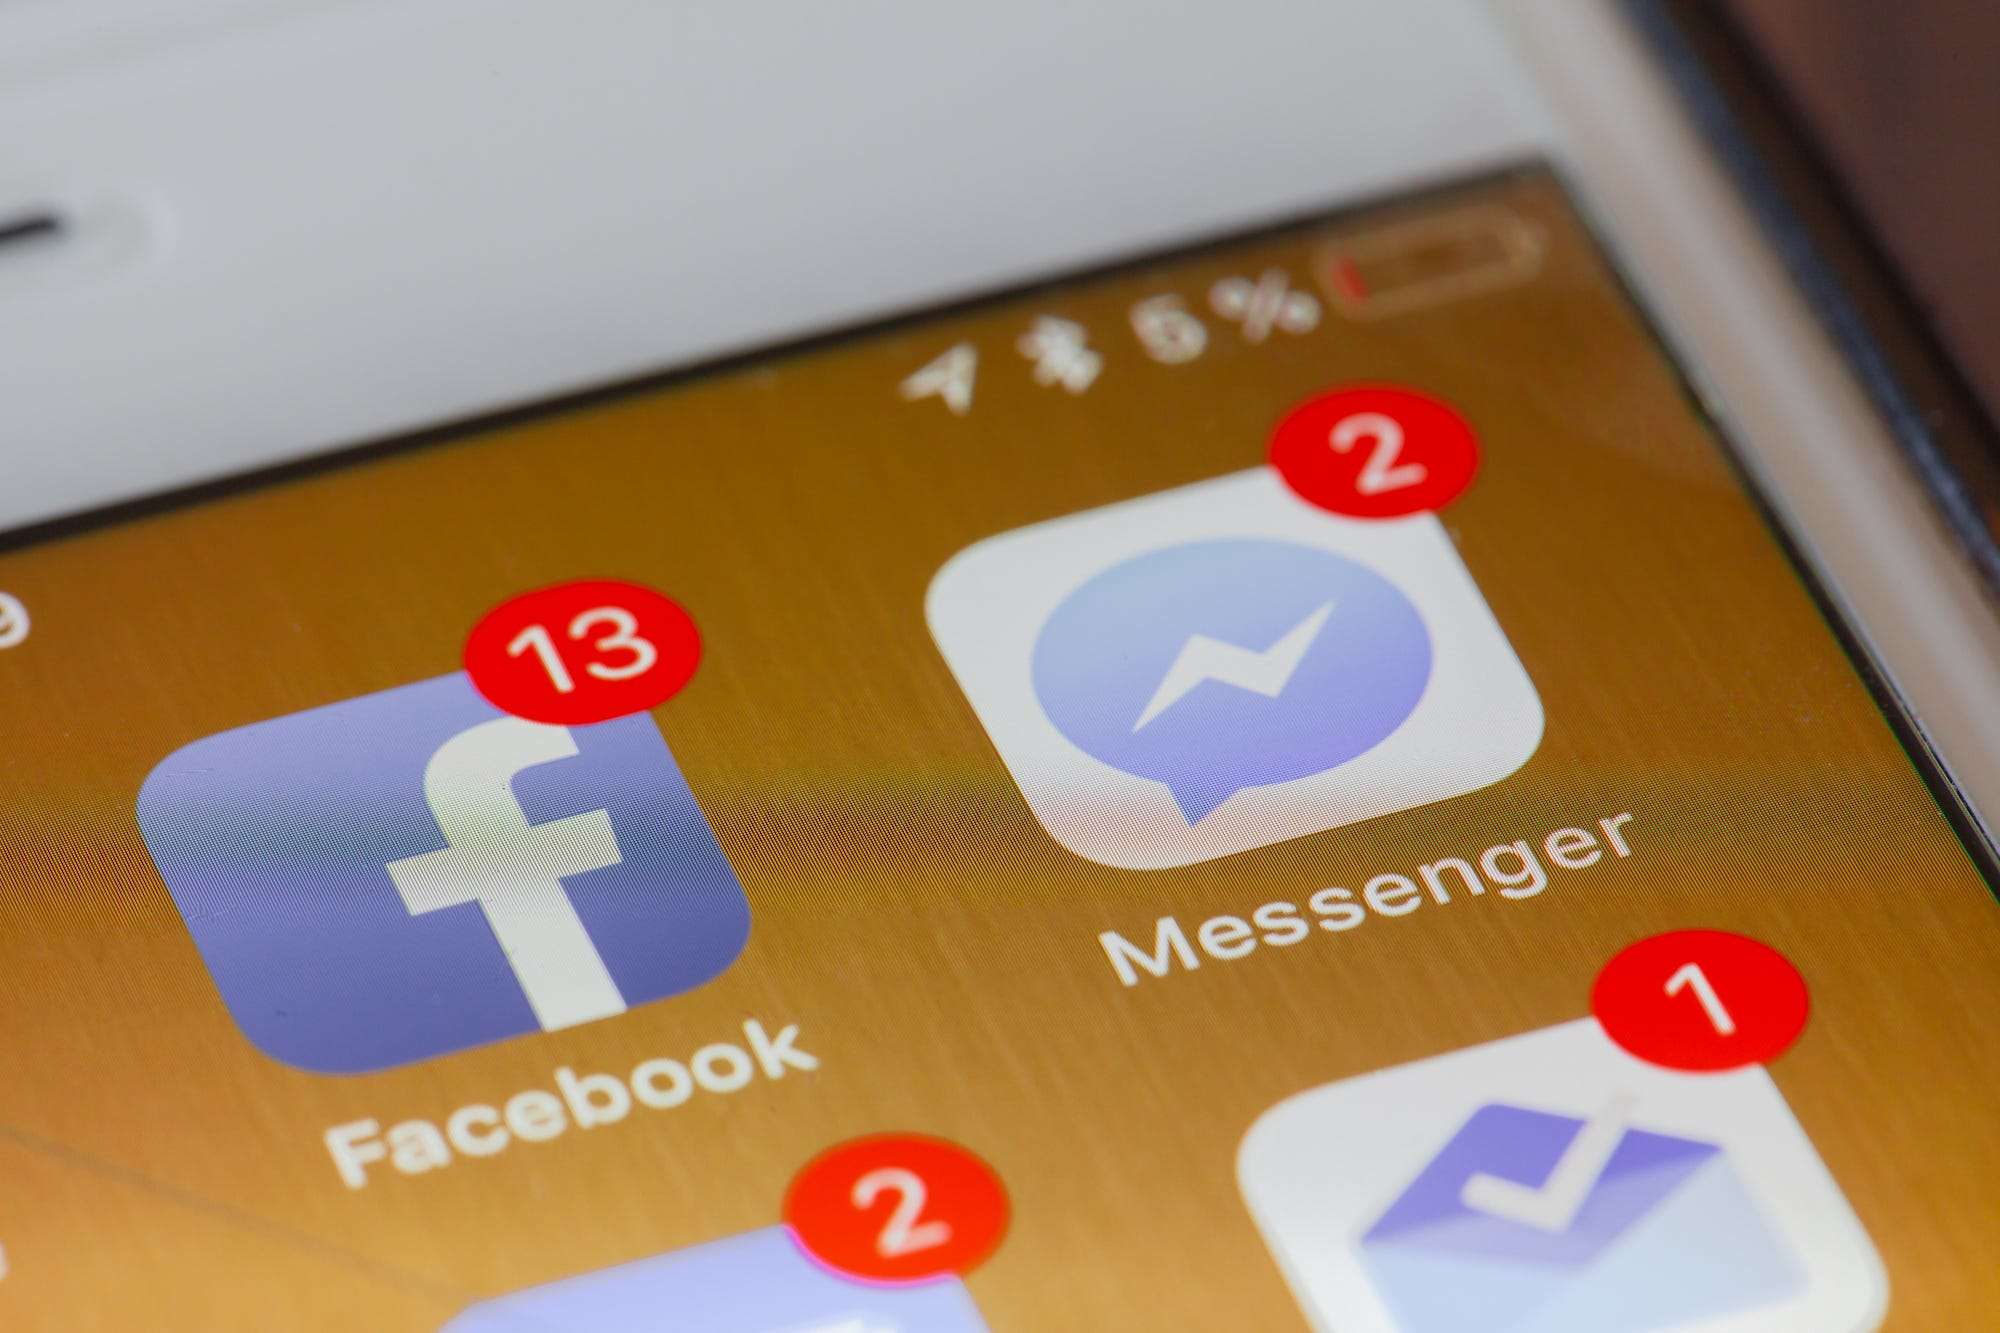 How Do You Know If Someone Blocked You On Messenger Here S How To Use The Facebook App S Send And Receive Features To Figure It Out Business Insider India